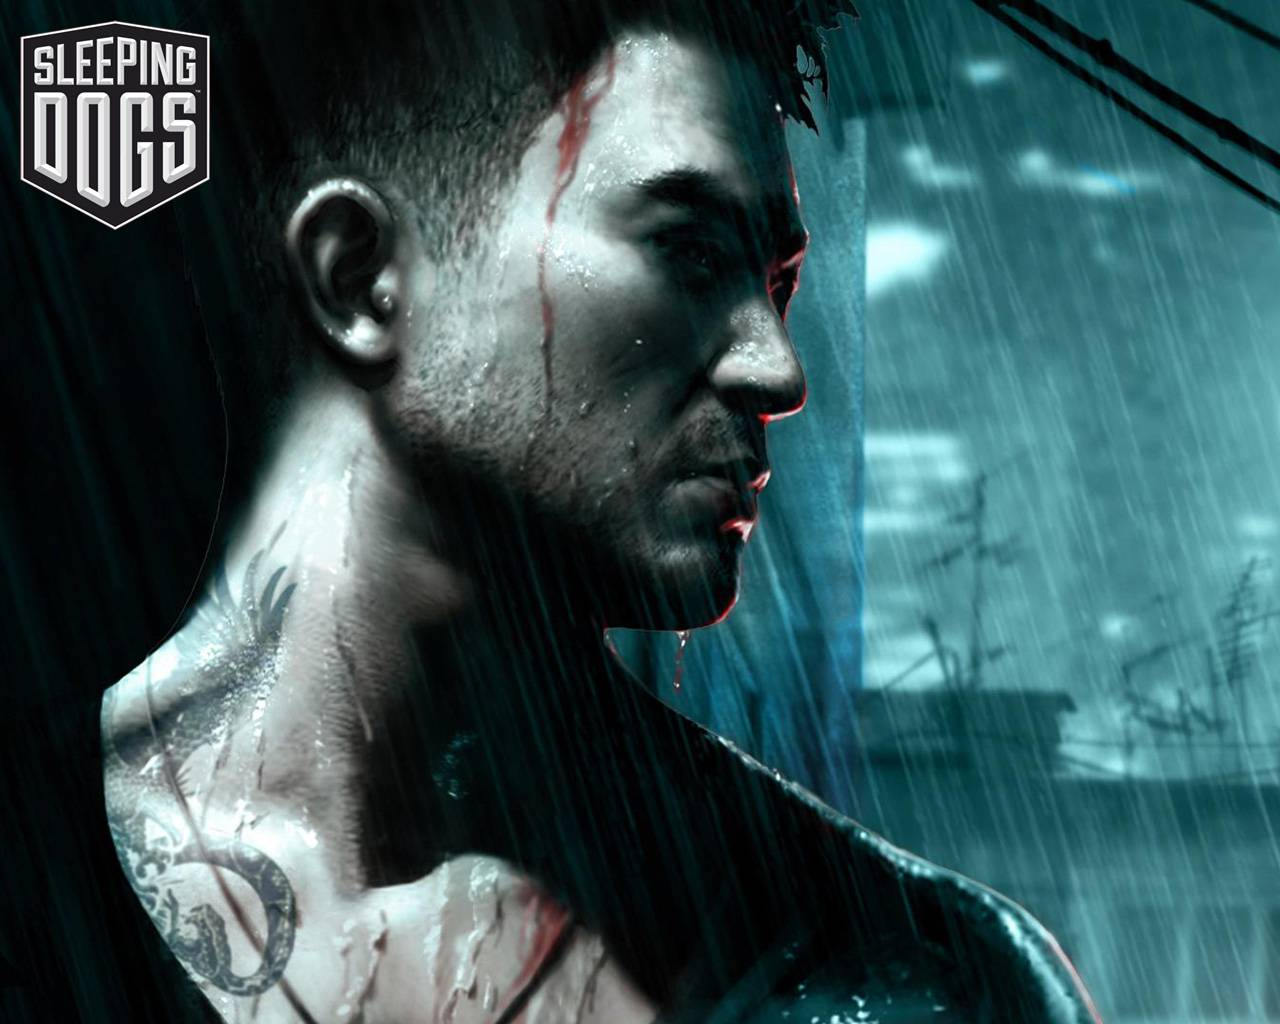 Sleeping Dogs is due for the PC, PS3 and Xbox 360. The game is being